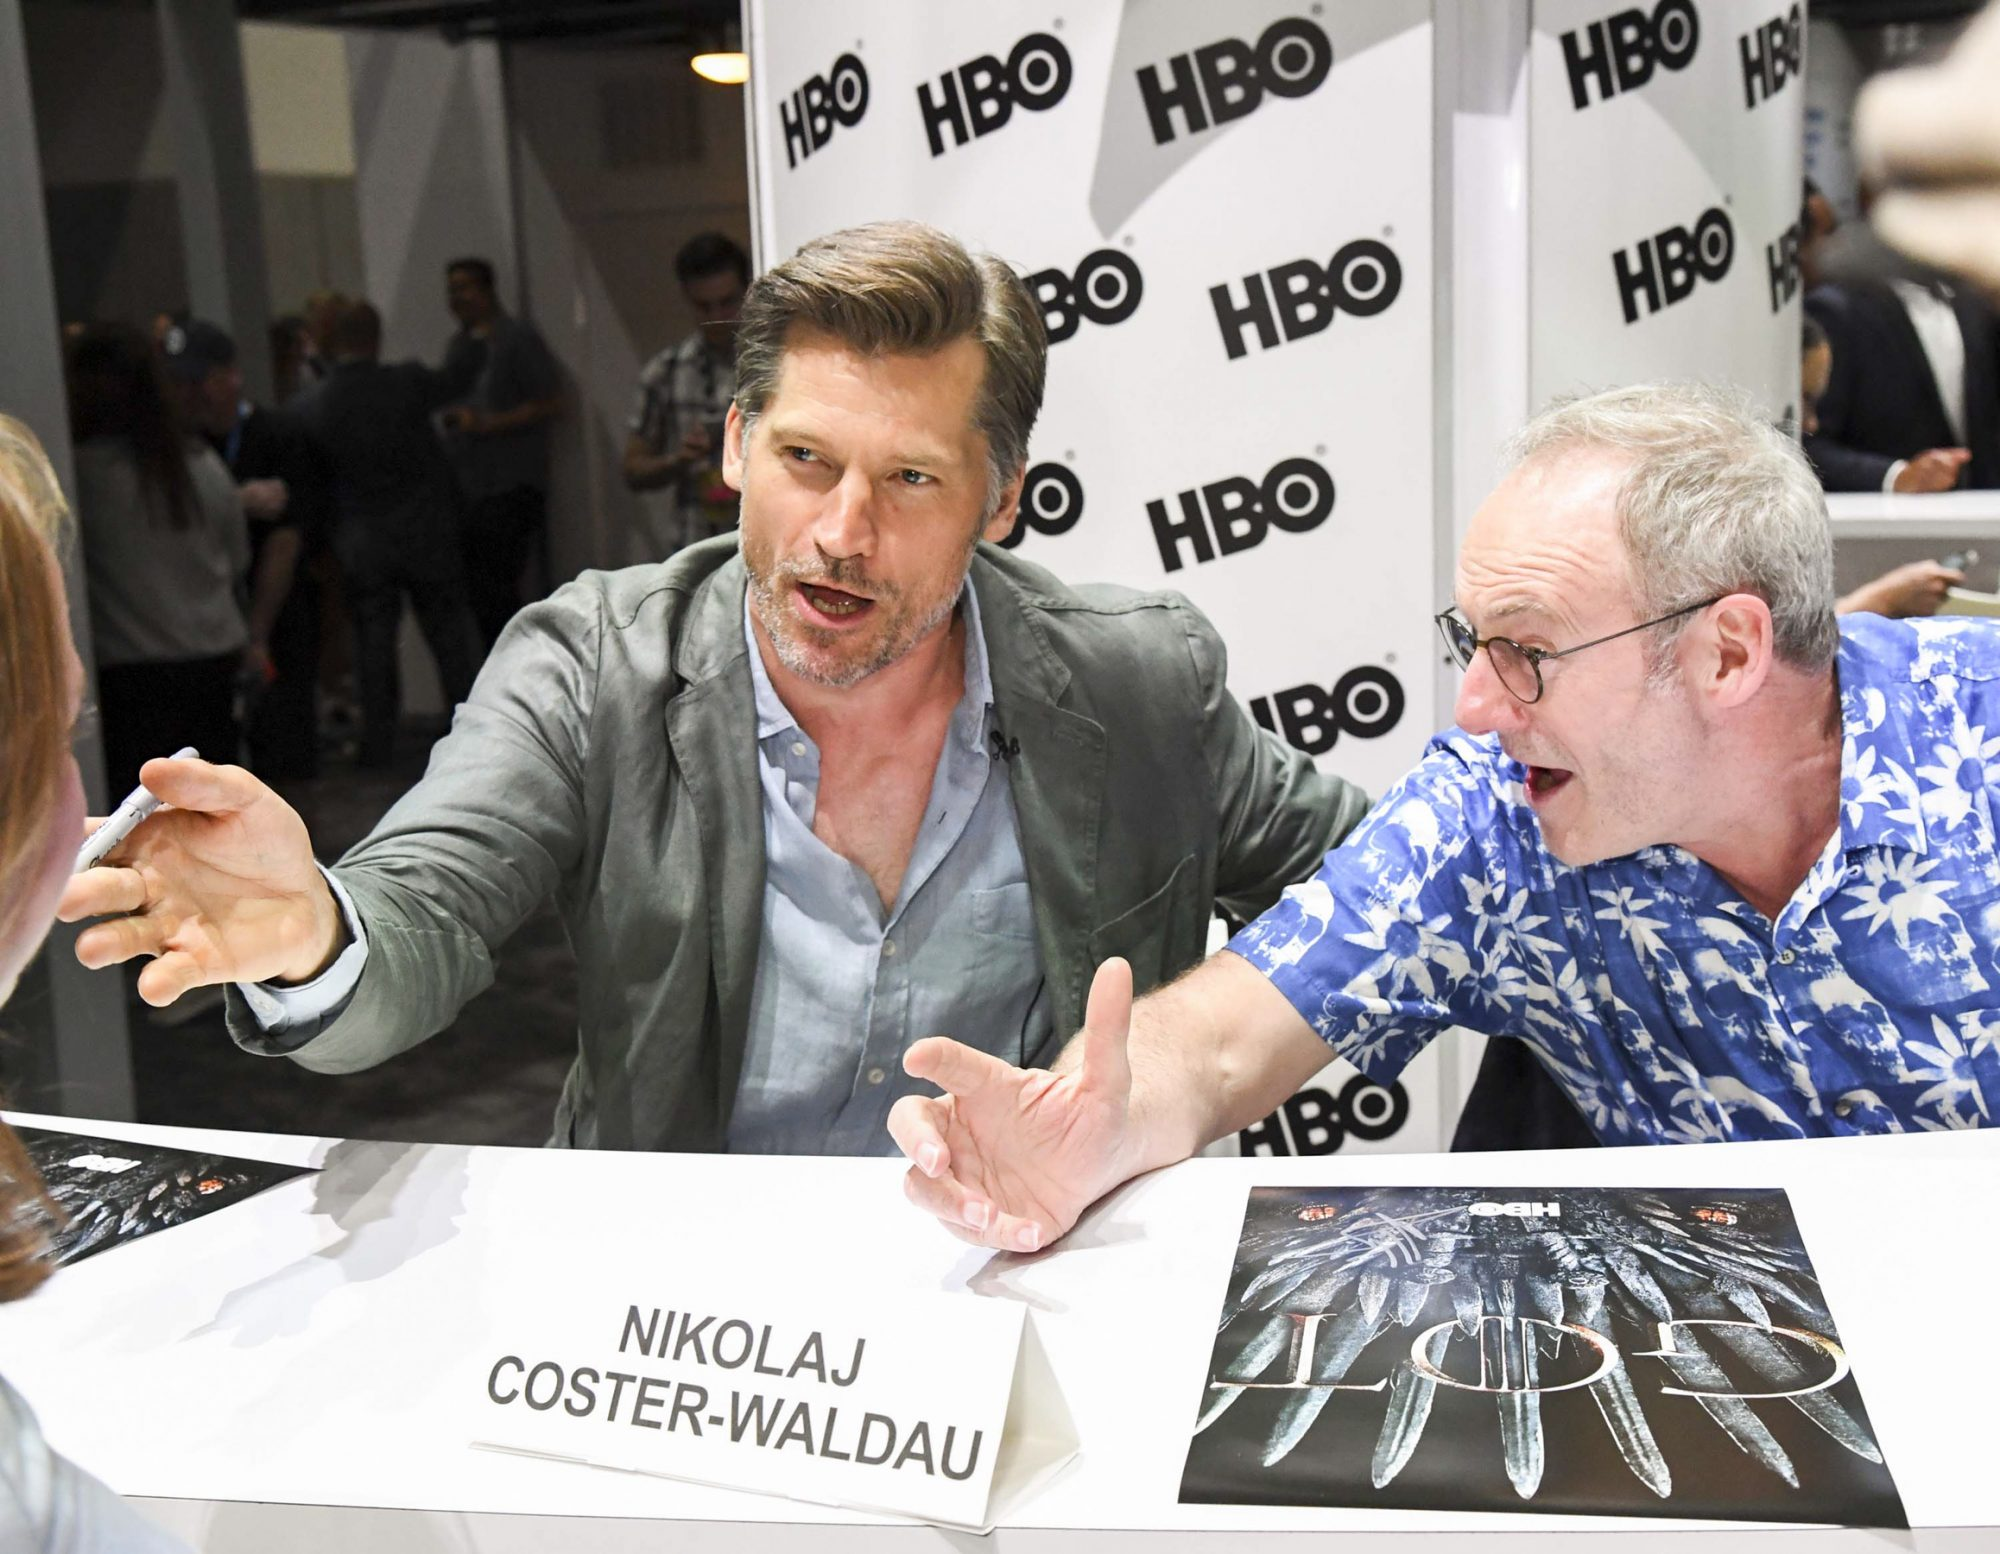 """SAN DIEGO, CALIFORNIA - JULY 19: Nikolaj Coster-Waldau and Liam Cunningham at """"Game Of Thrones"""" Comic Con Autograph Signing 2019 on July 19, 2019 in San Diego, California. (Photo by Jeff Kravitz/FilmMagic for HBO)"""